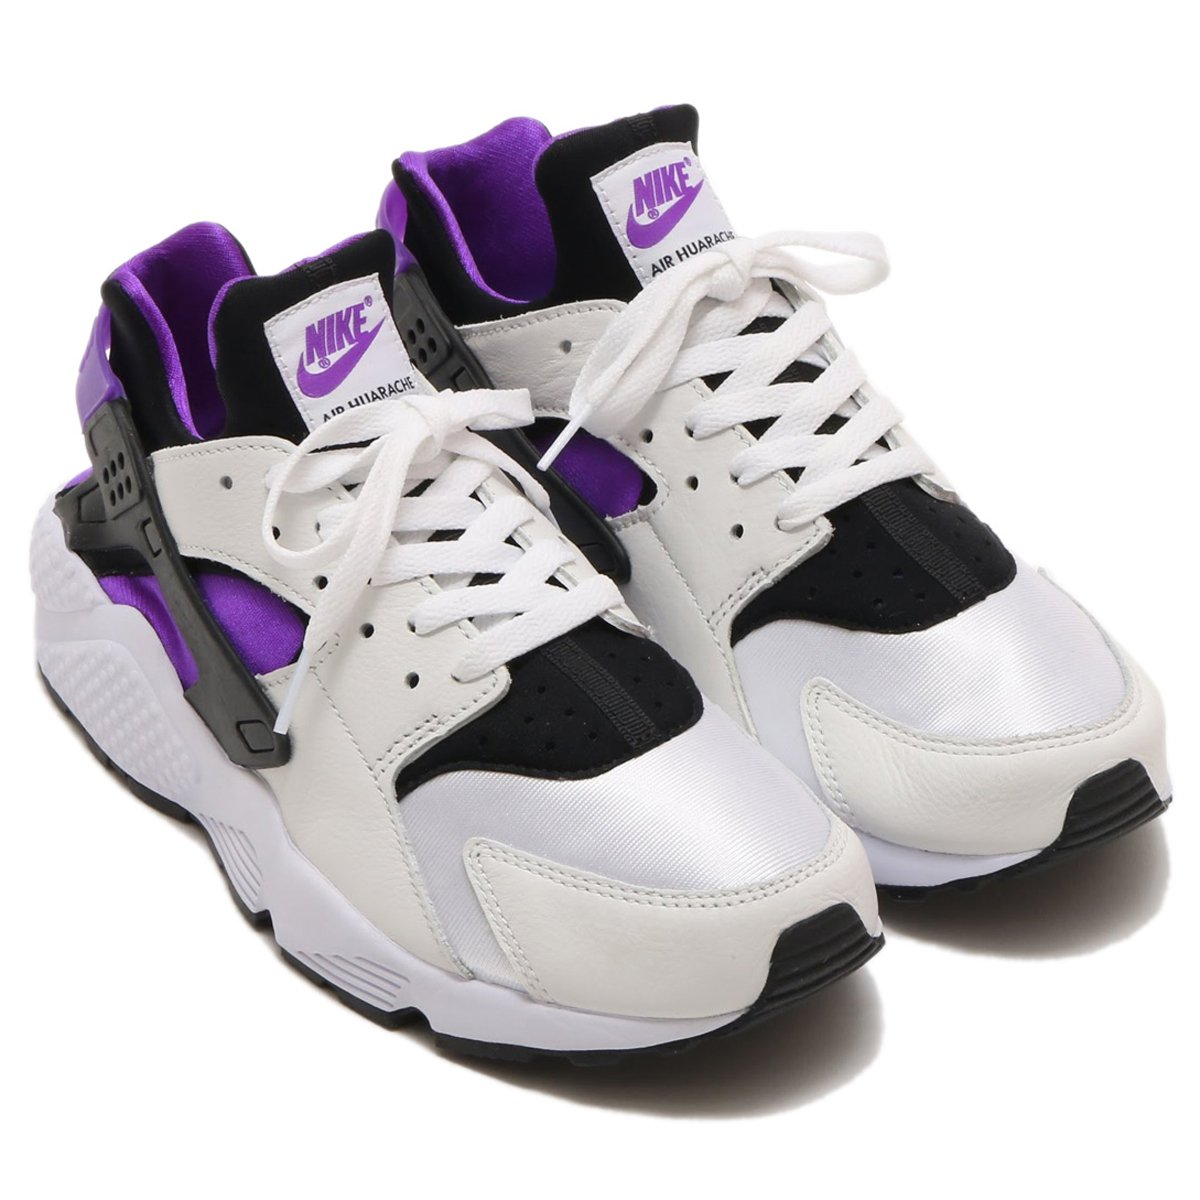 sneakers for cheap 93850 4a41b Amazon.com | Nike Men's Air Huarache Run '91 QS Running Shoe ...